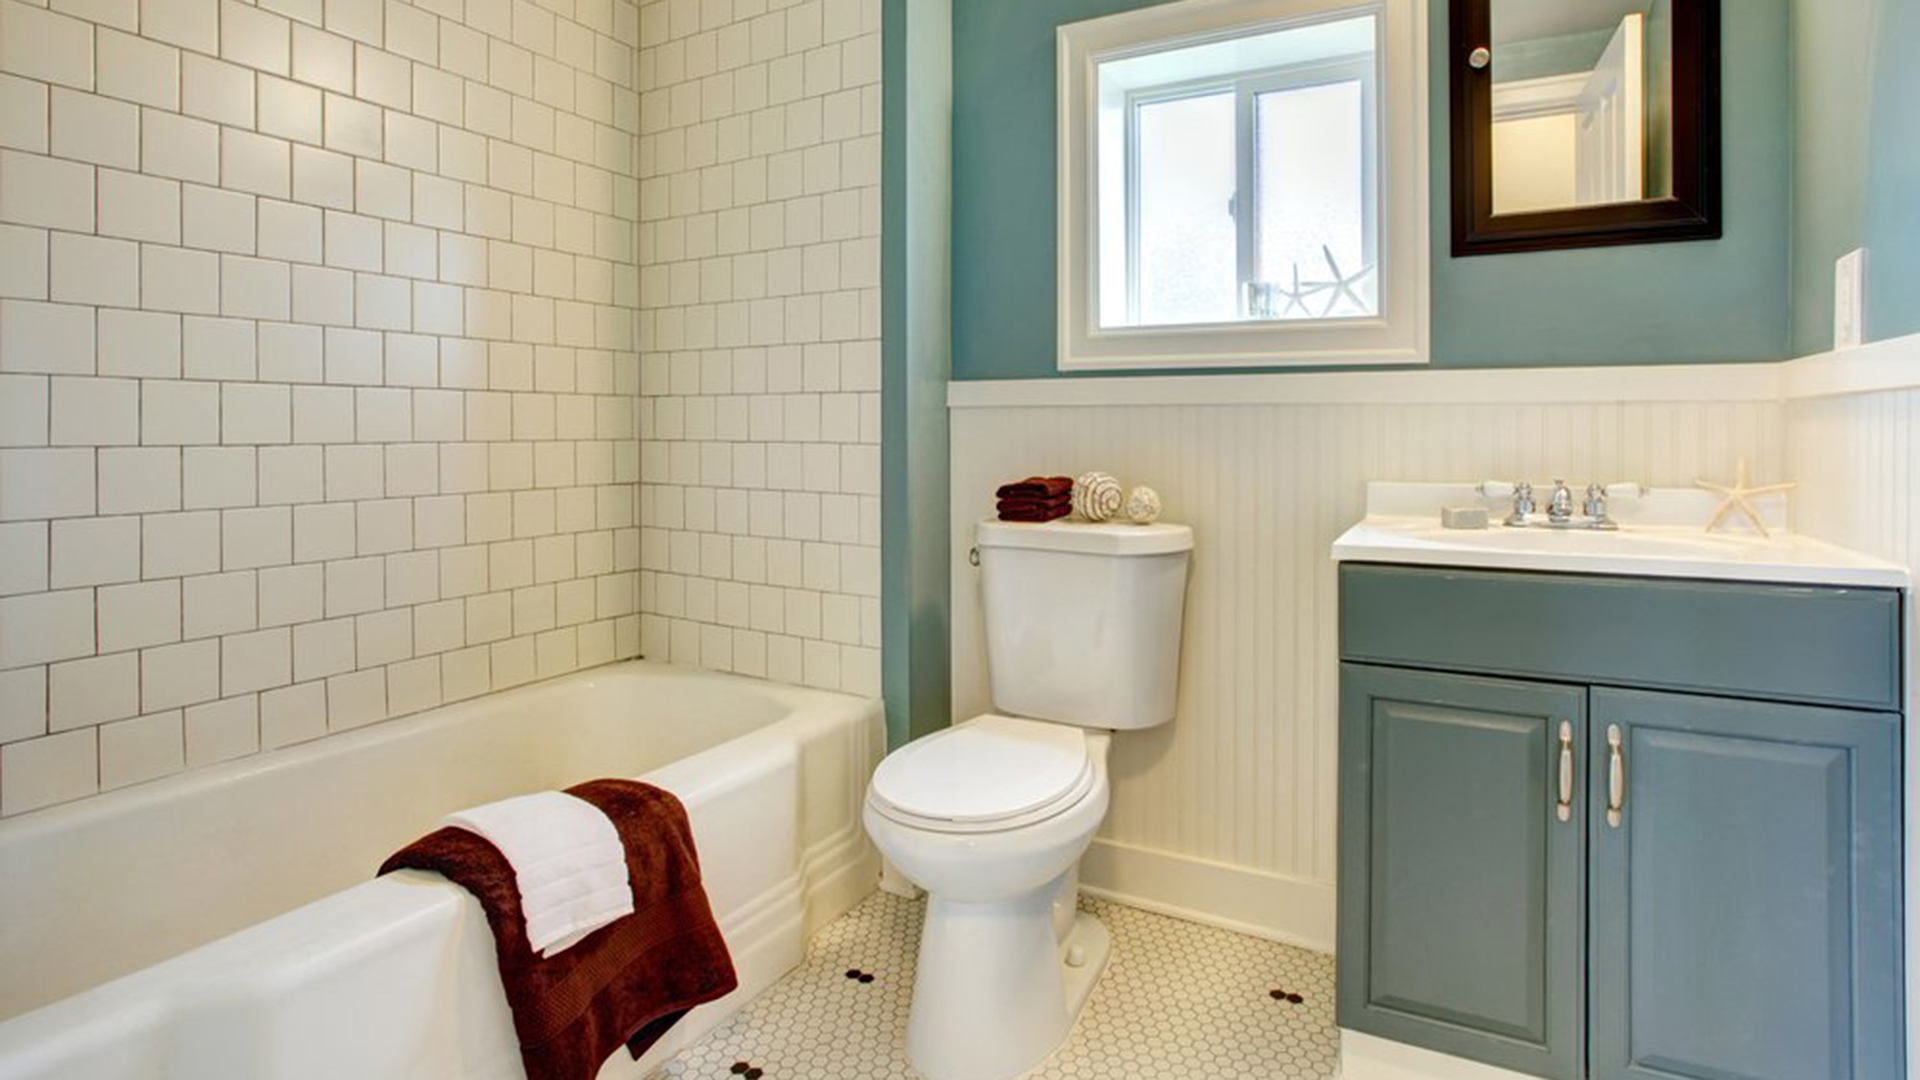 diy ways to improve rentals bathroom todaycom